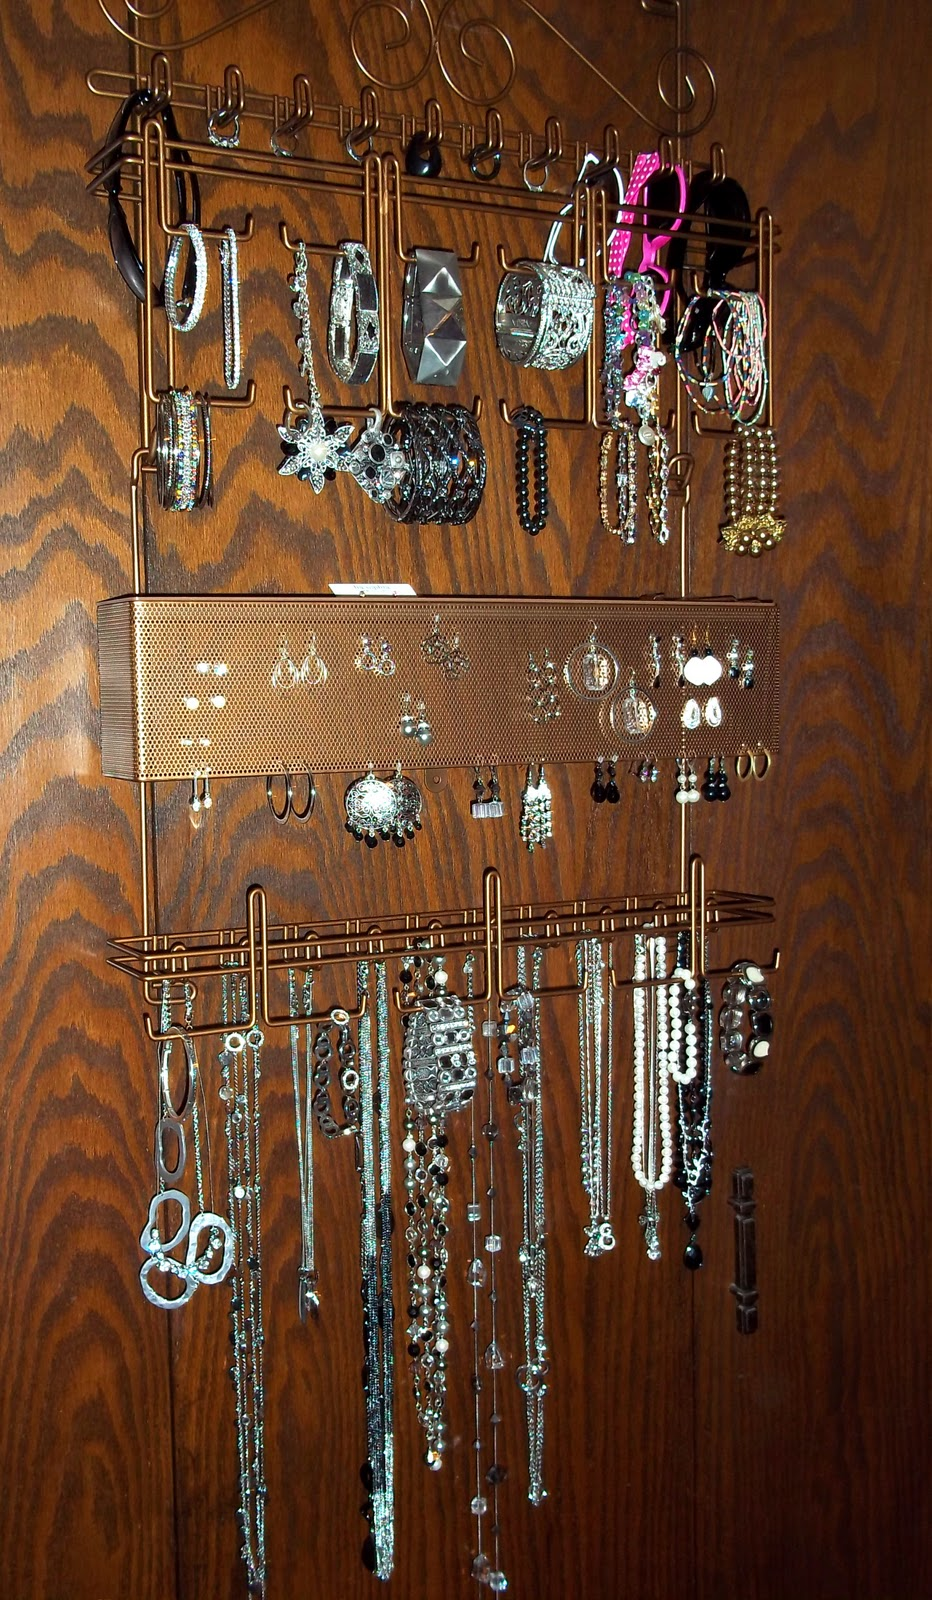 Cheapskate 4 Life Longstem OvertheDoor Jewelry Organizer